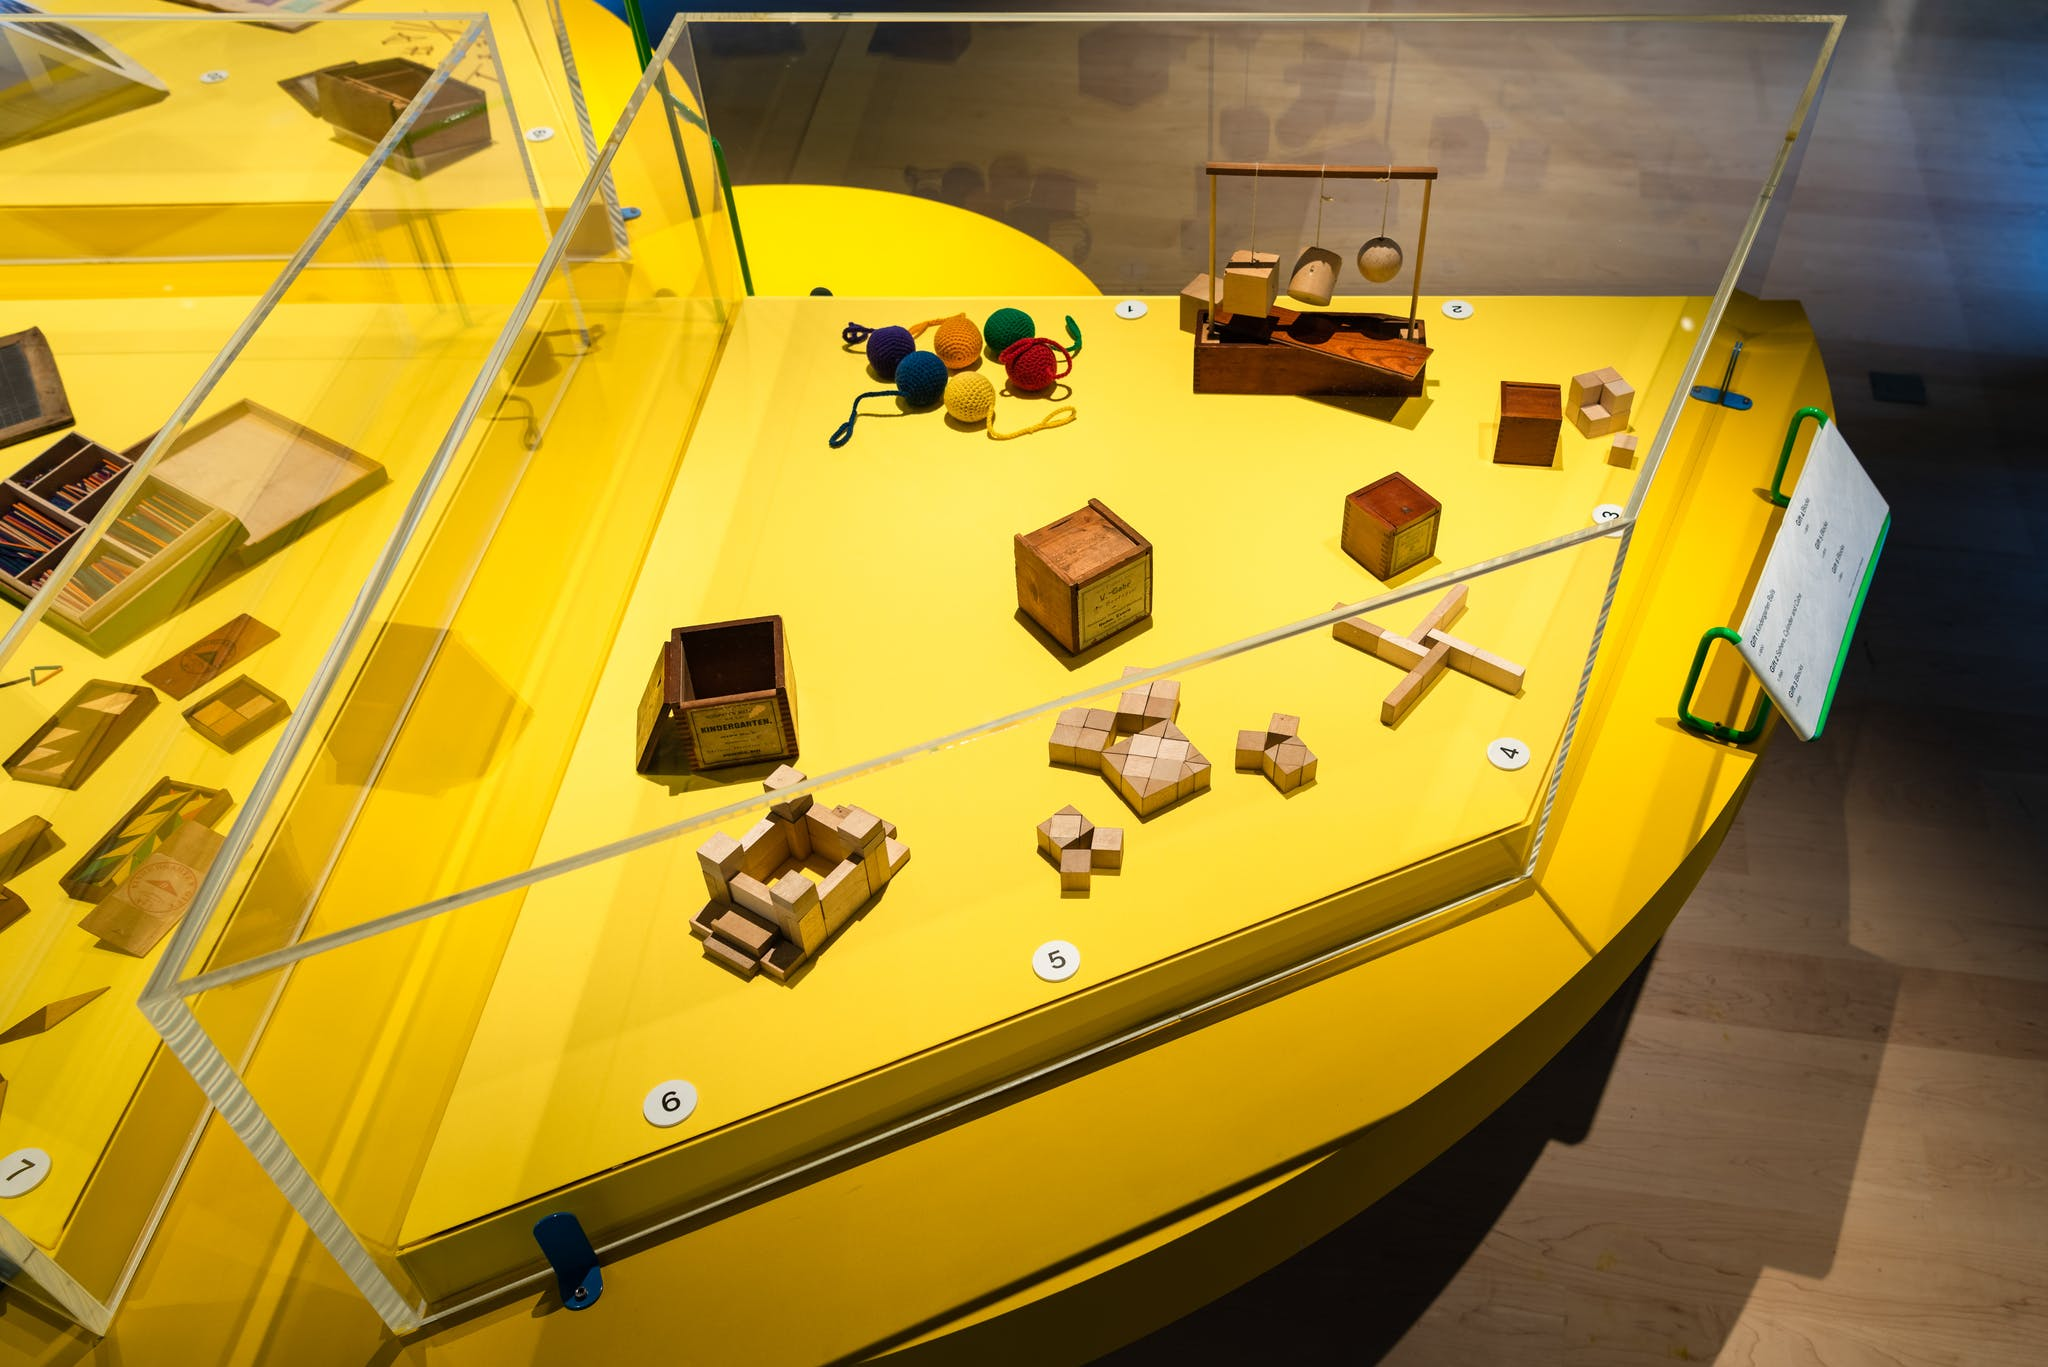 Photograph of an exhibition display case with a bright yellow base. Inside the case are several small wooden toys in various shapes and 6 balls of coloured wool.